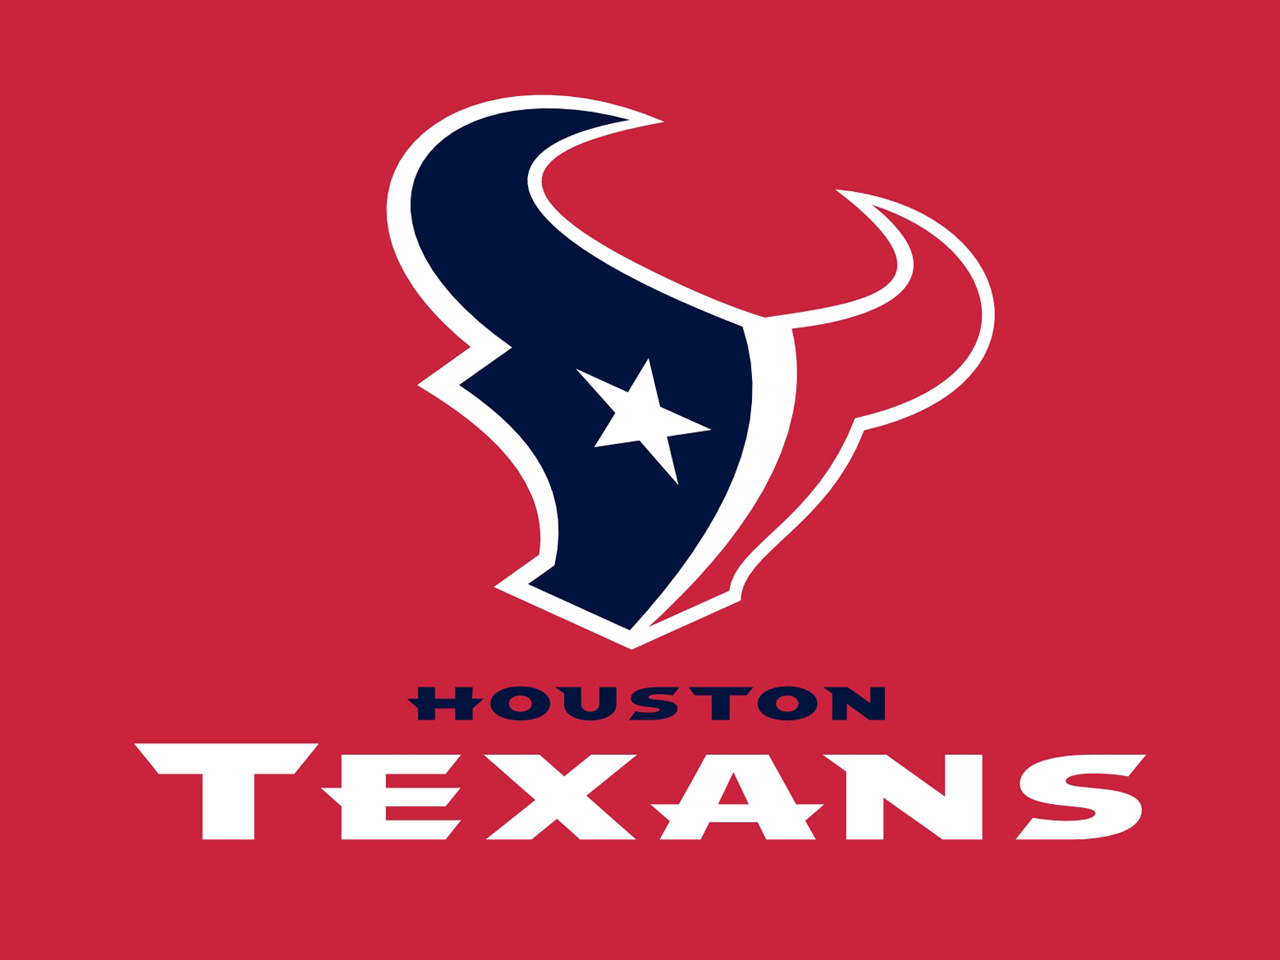 texans wallpaper iphone  HD Photo Wallpaper Collection HD WALLPAPERS 1280x960